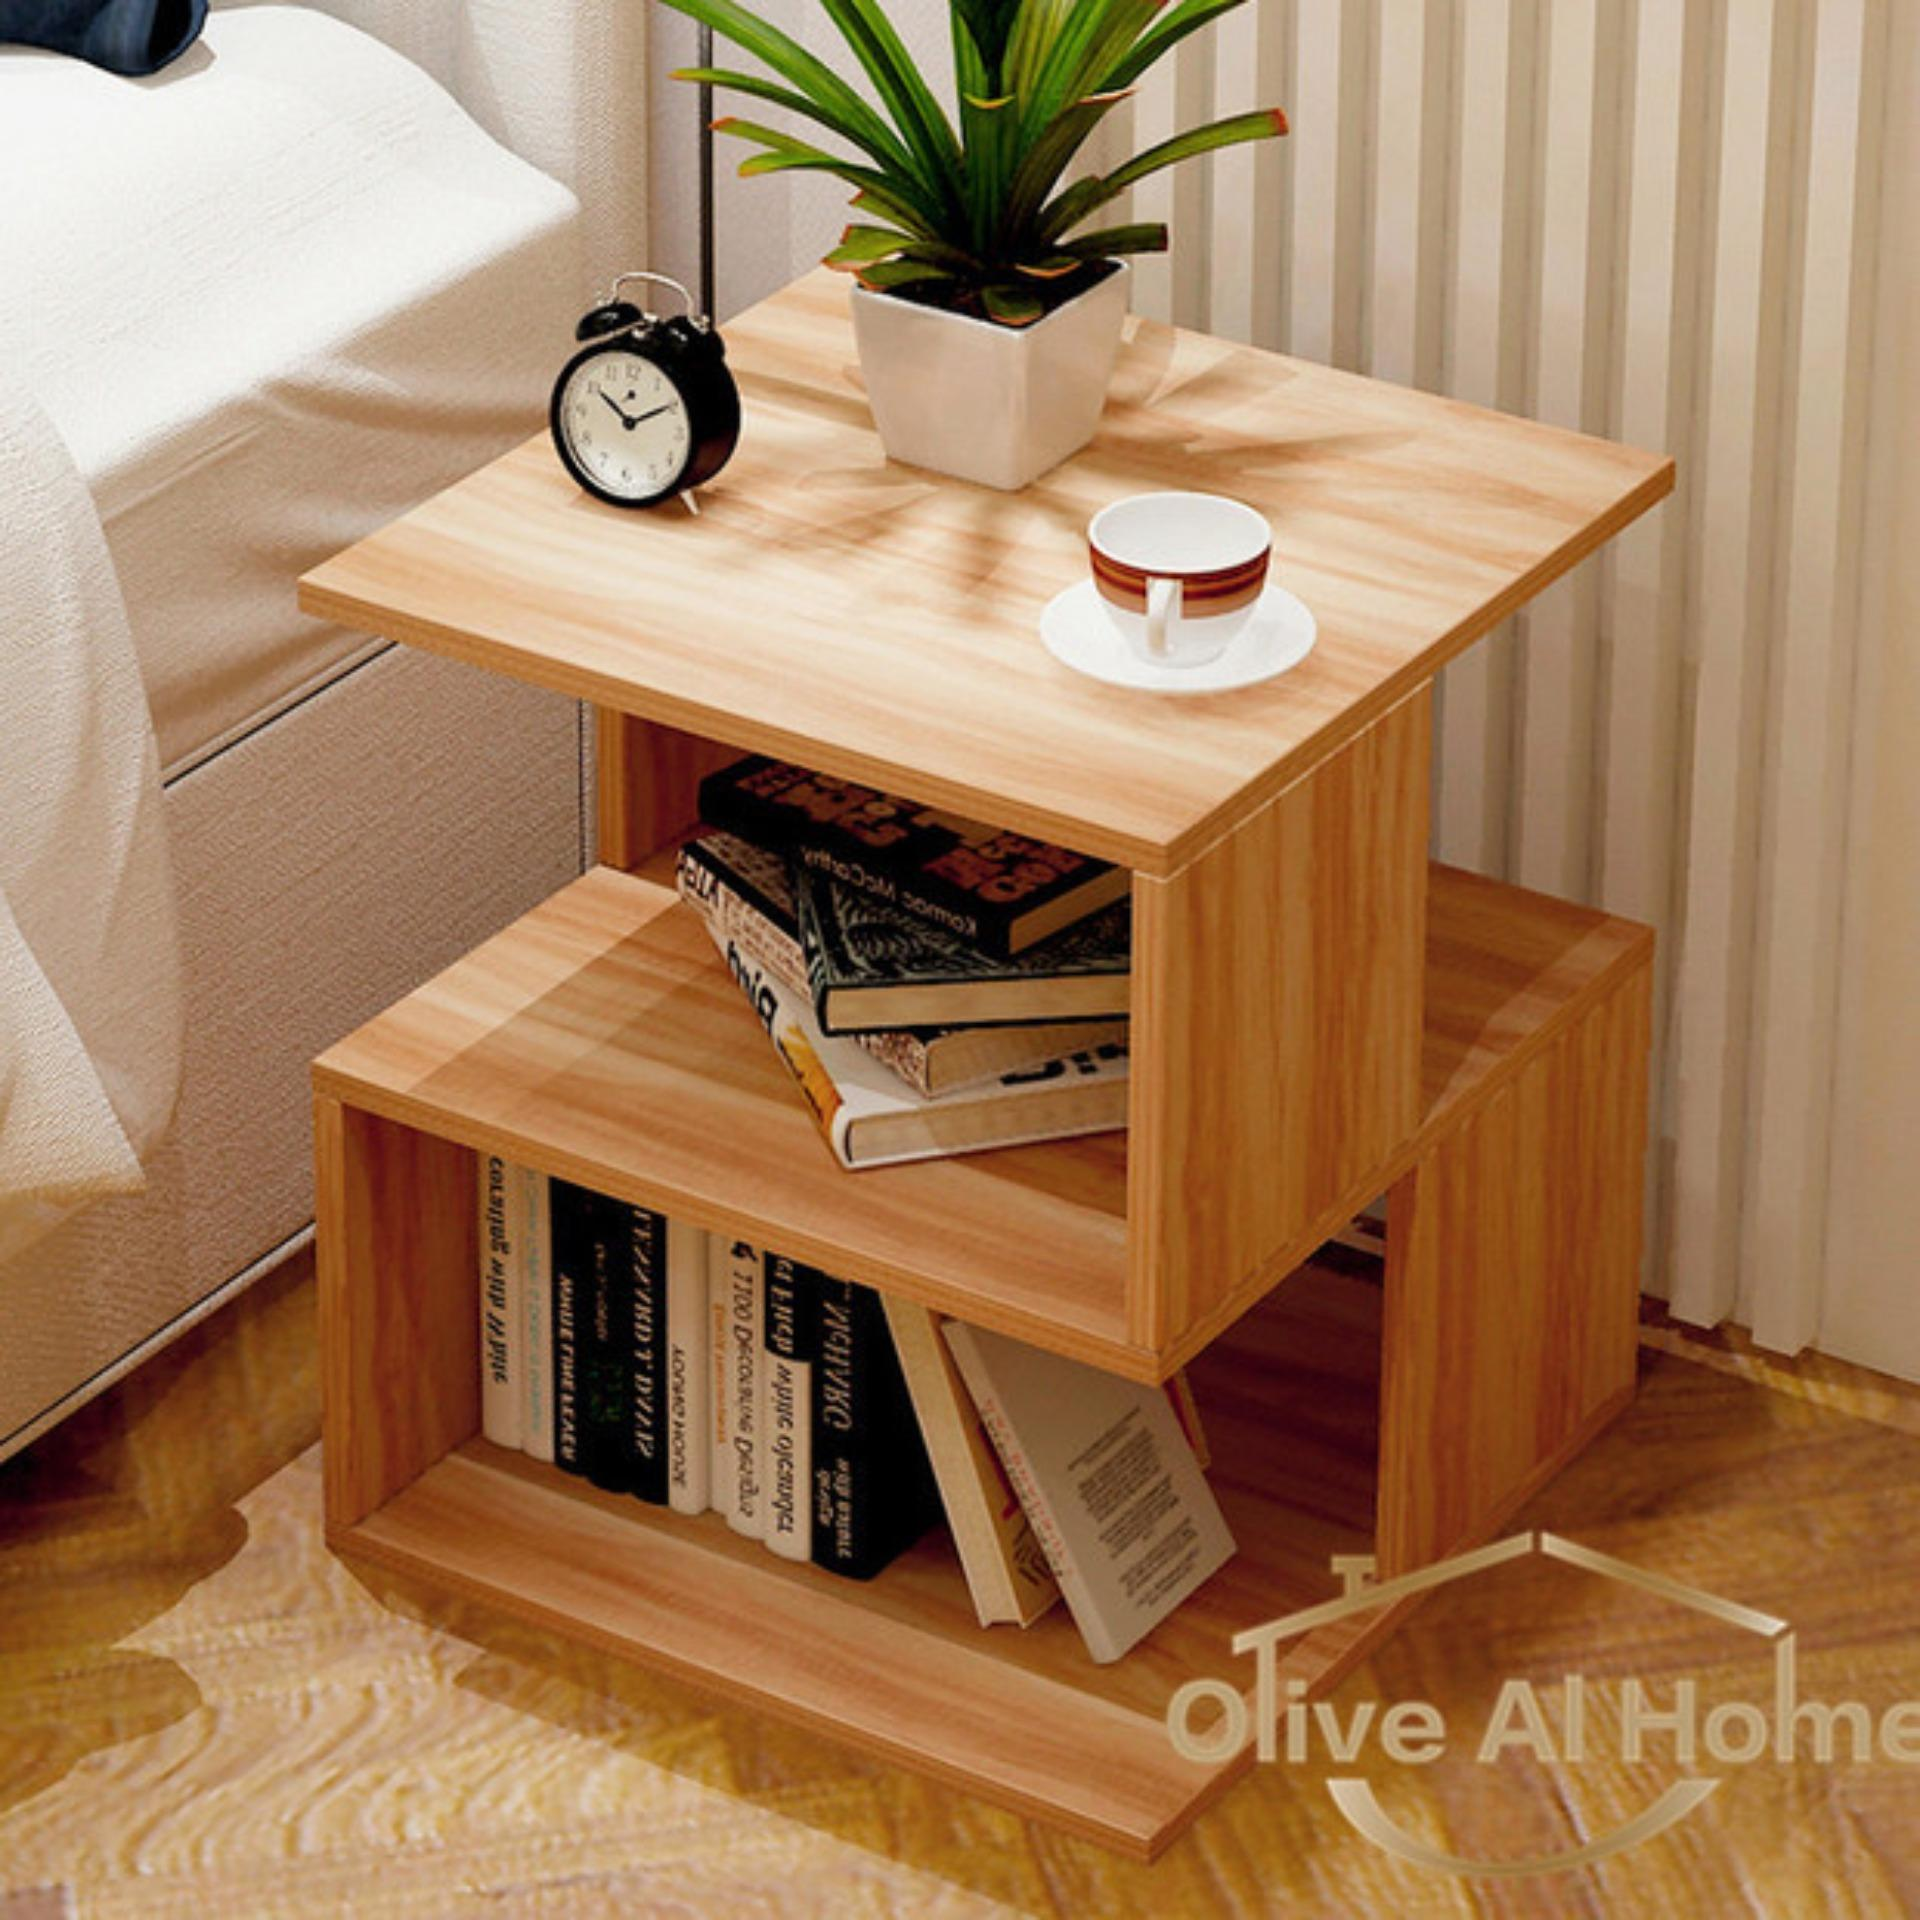 Bedside Table Book Shelf Nightstand Storage Organizer